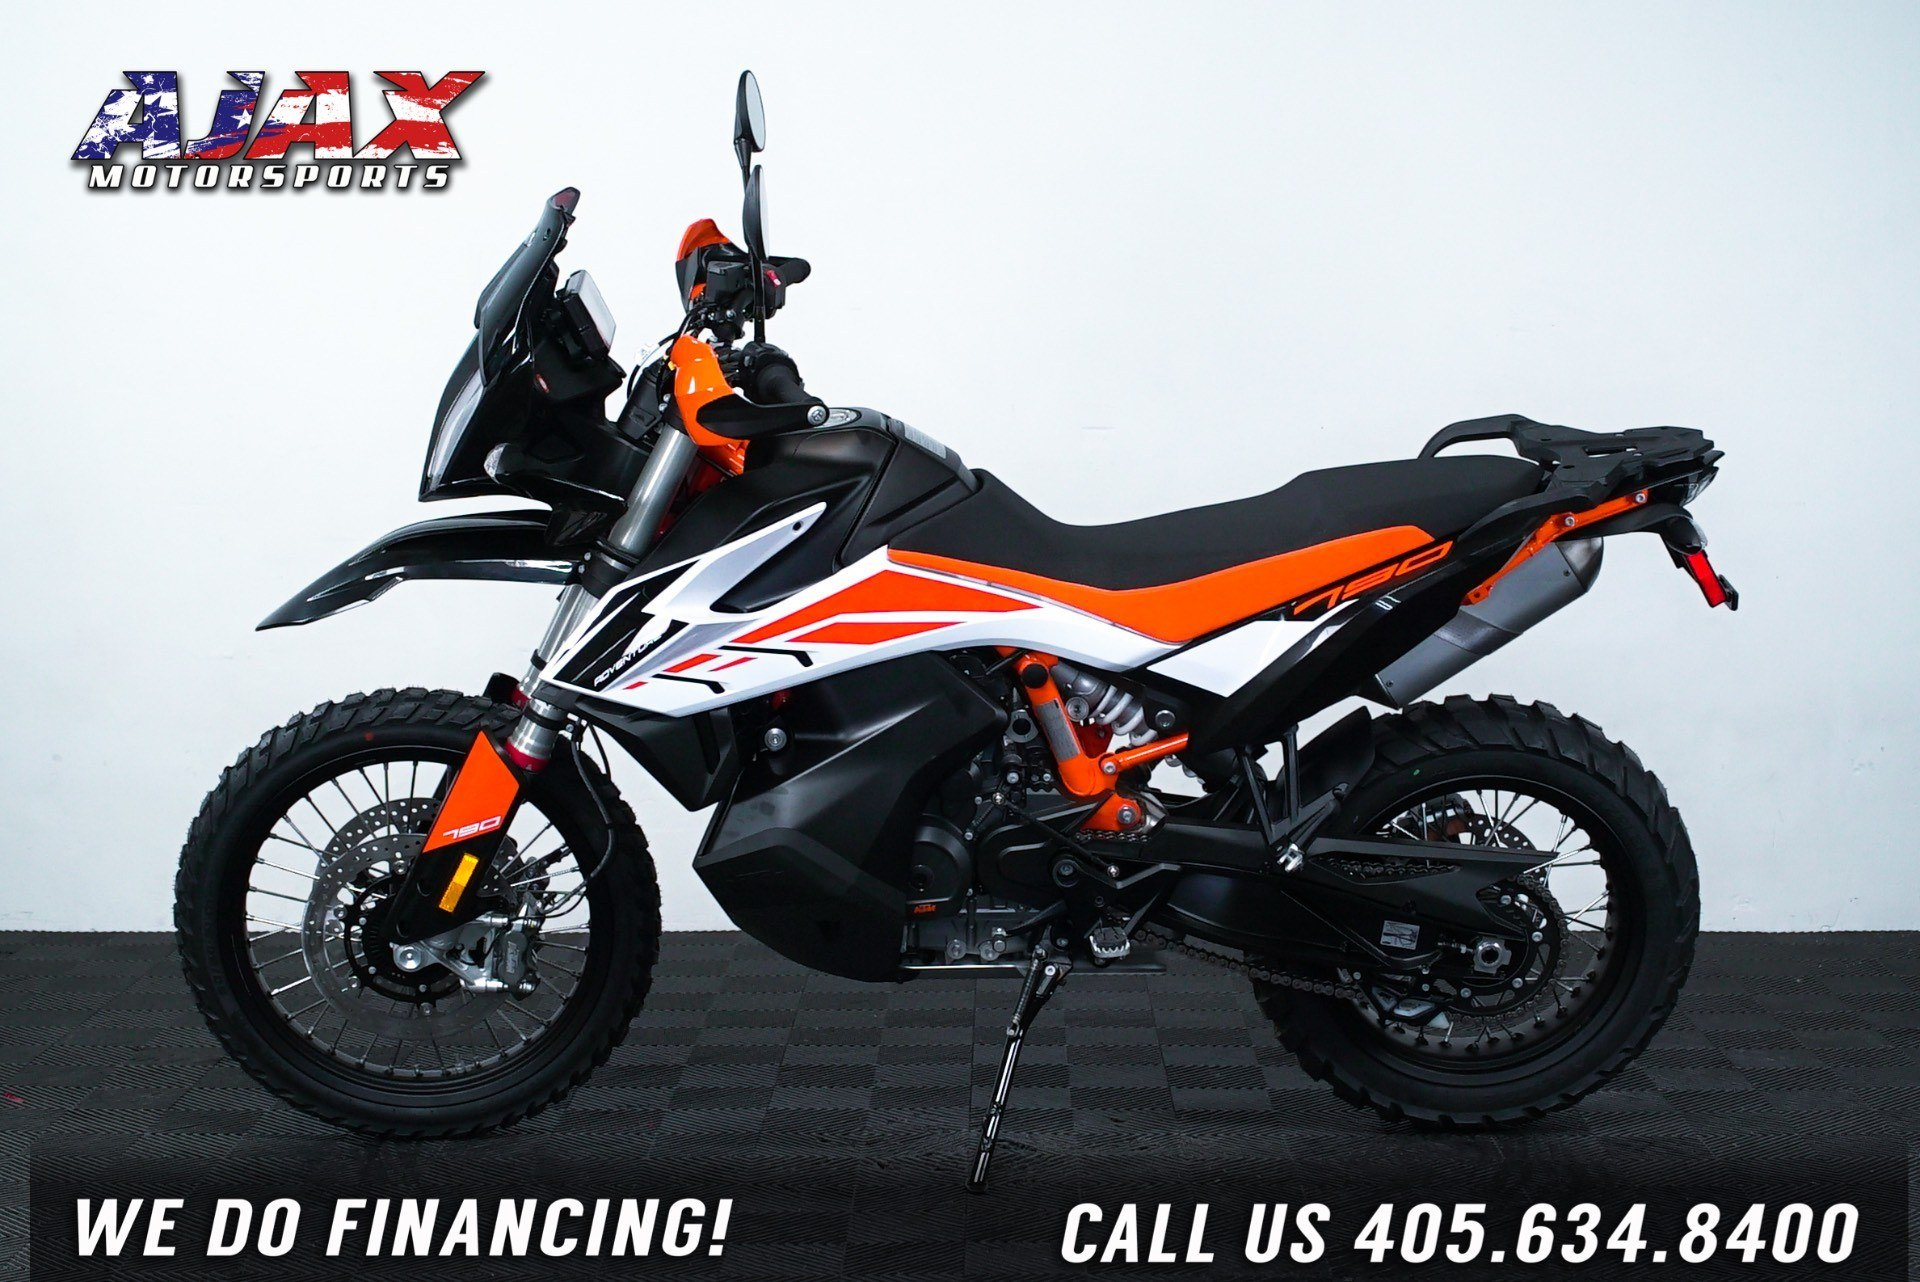 2020 KTM 790 Adventure R in Oklahoma City, Oklahoma - Photo 1